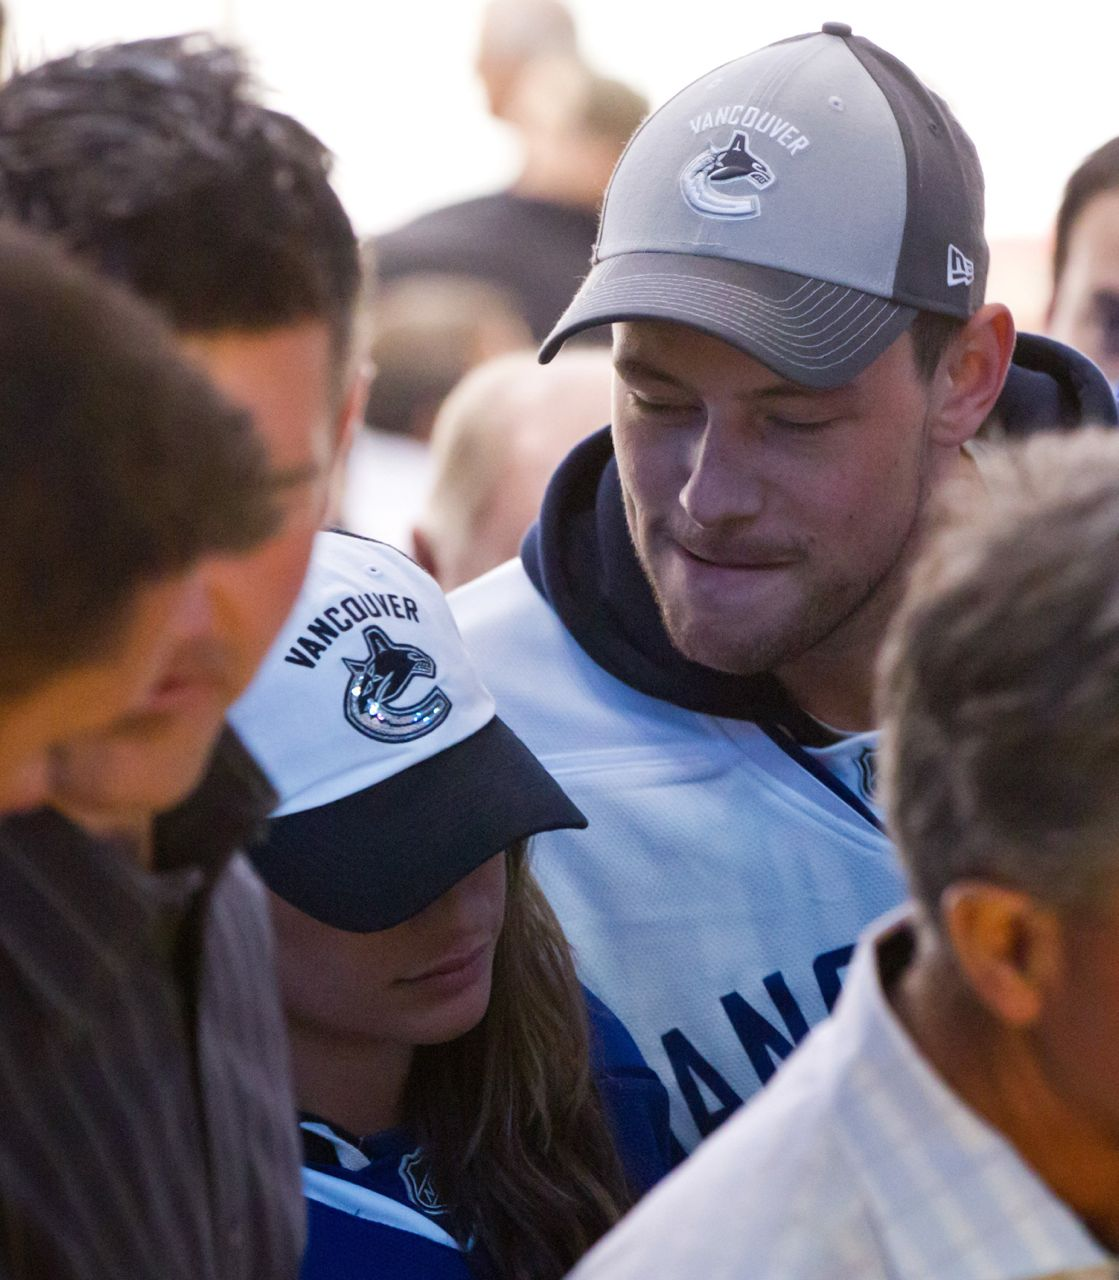 Cory Monteith and Lea Michele hockey game Canucks date Stanley Cup